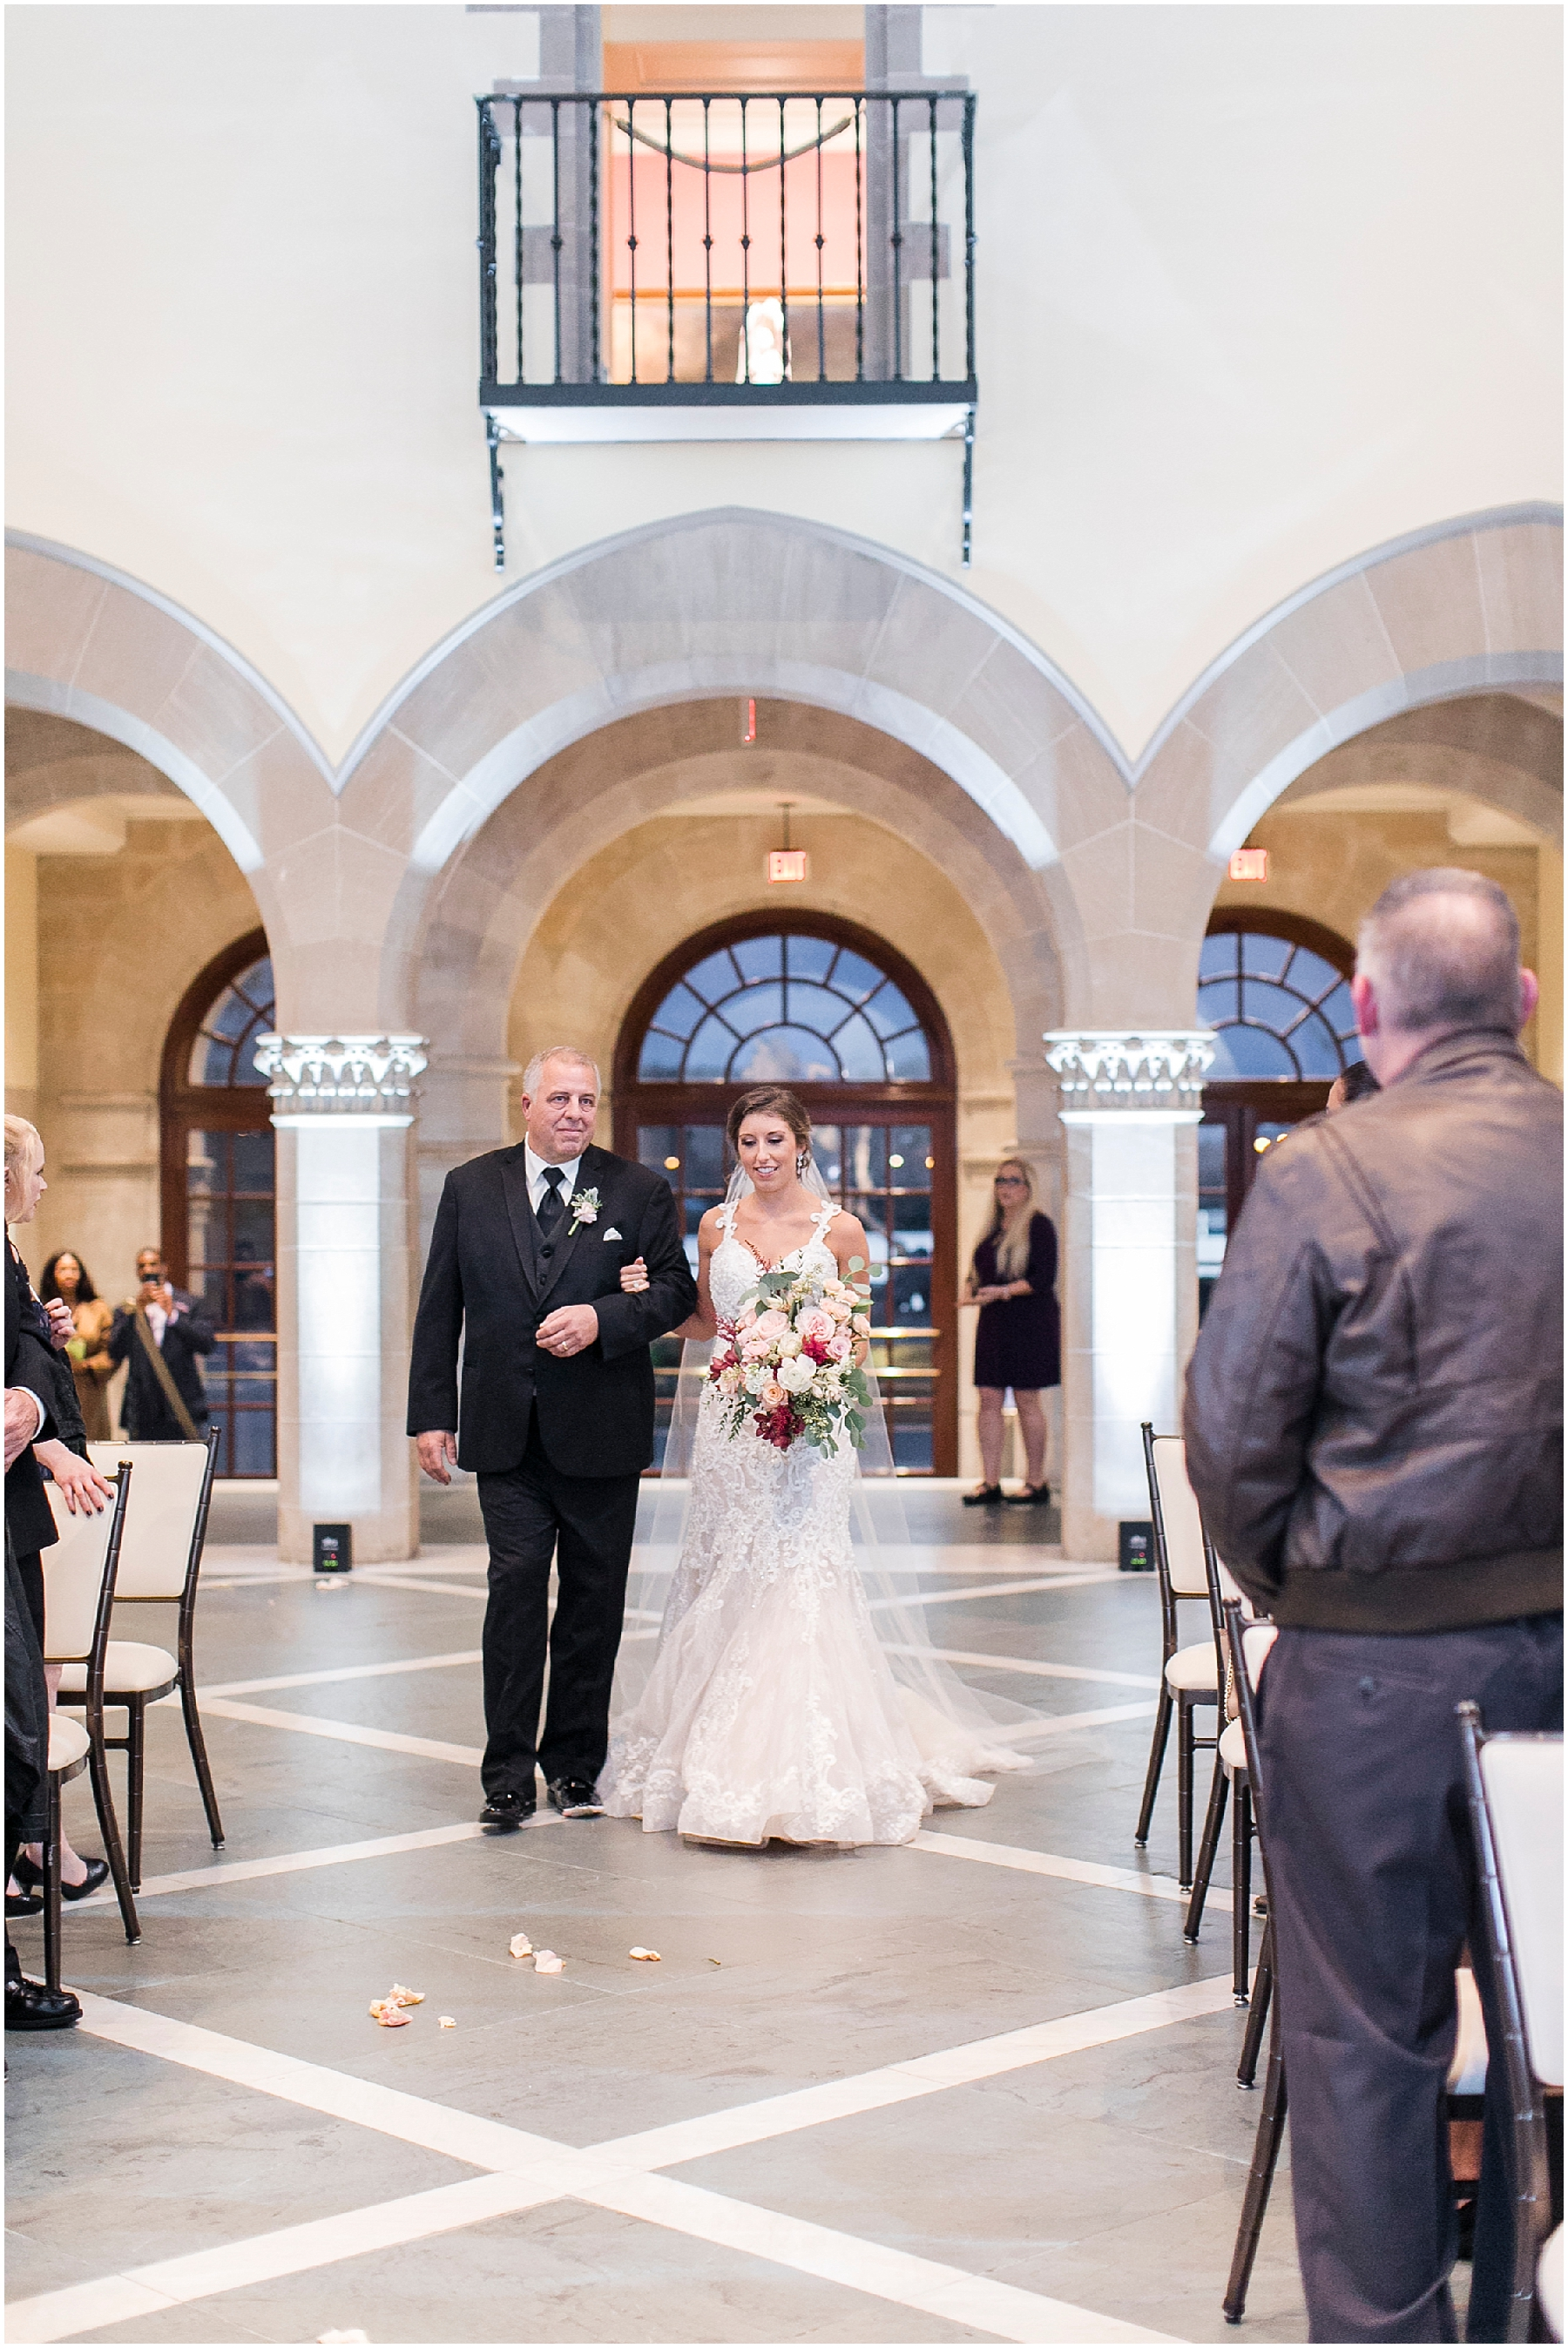 wedding ceremony at chrysler museum wedding, norfolk, virginia, fall wedding